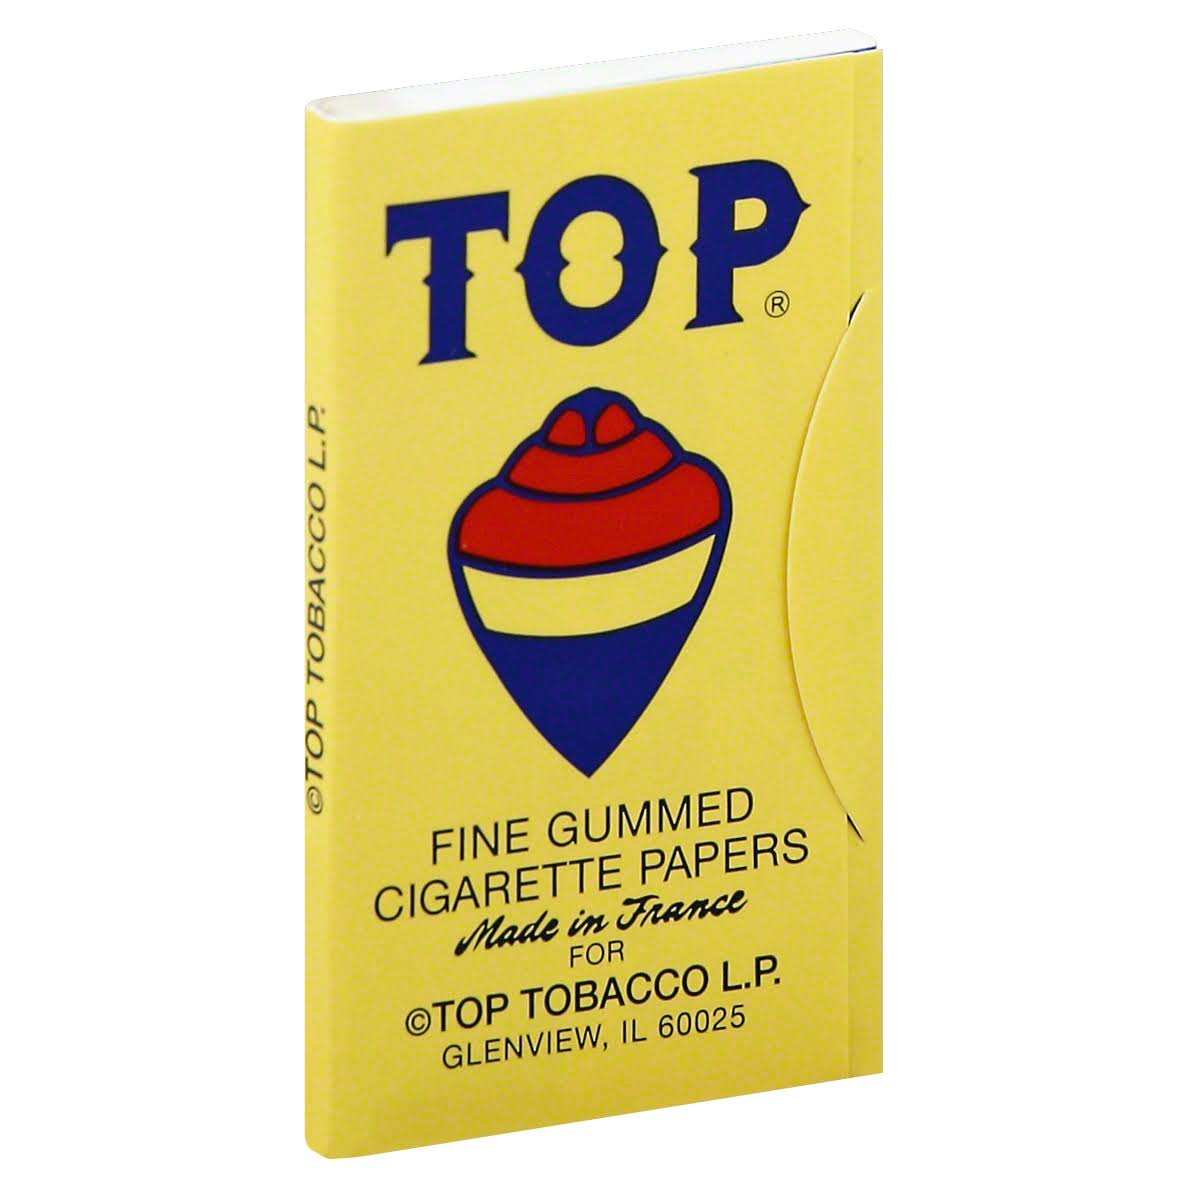 Top Cigarette Papers, Fine Gummed - 100 papers